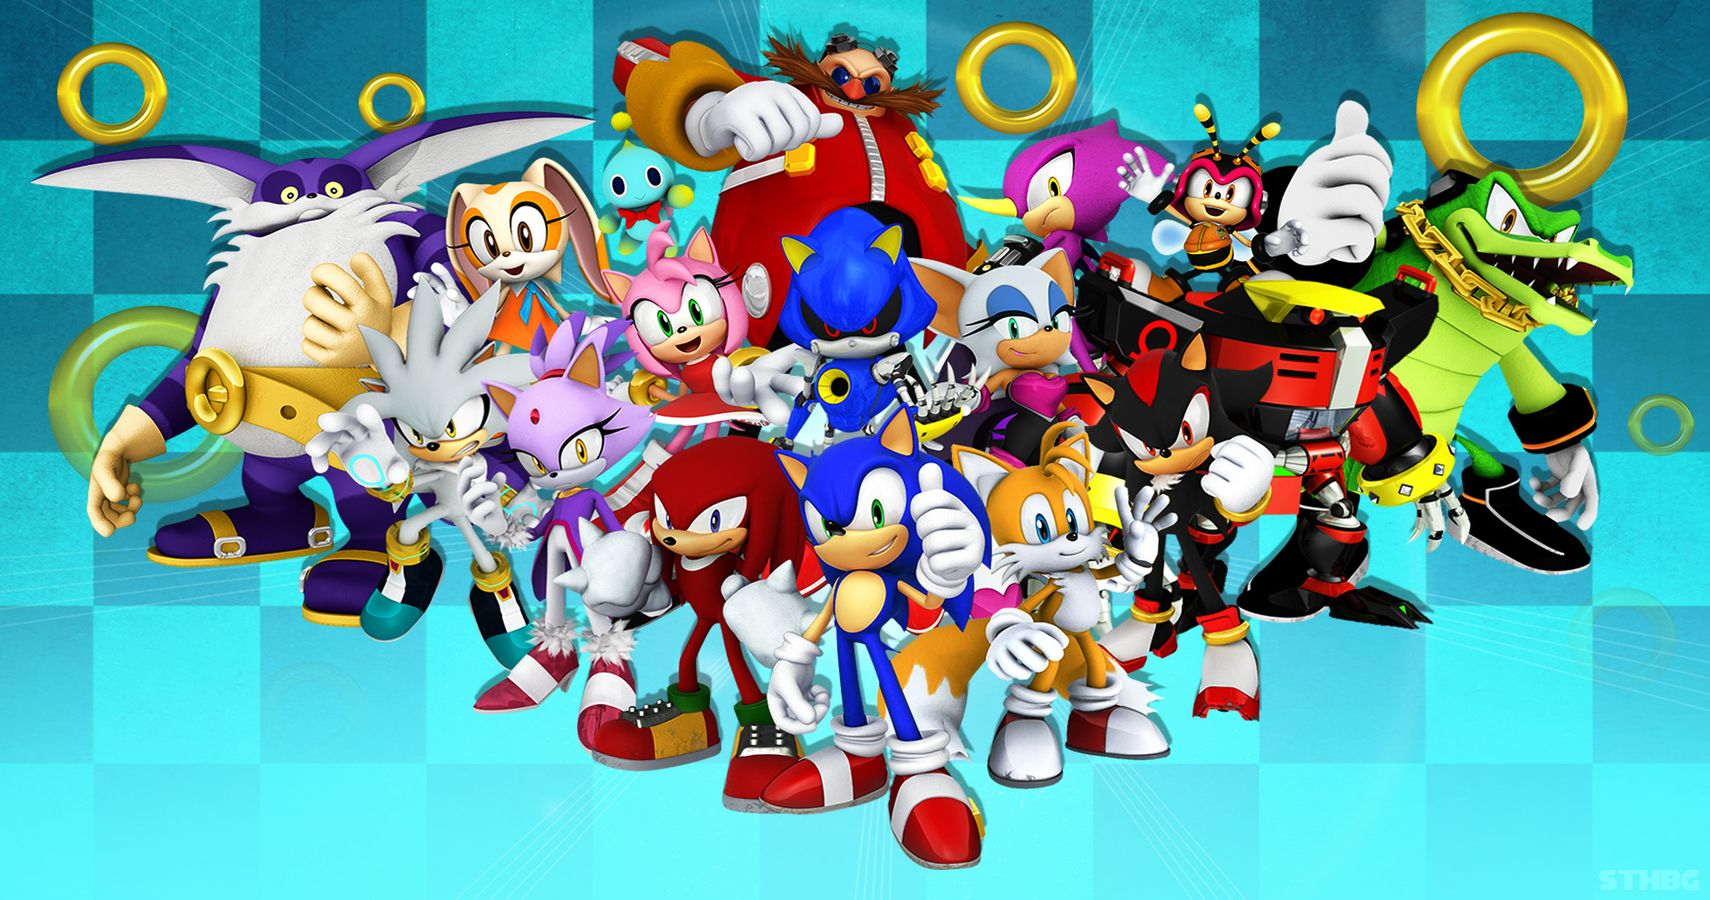 5 Sonic Characters We Want To See In The Sequel And Who Should Play Them